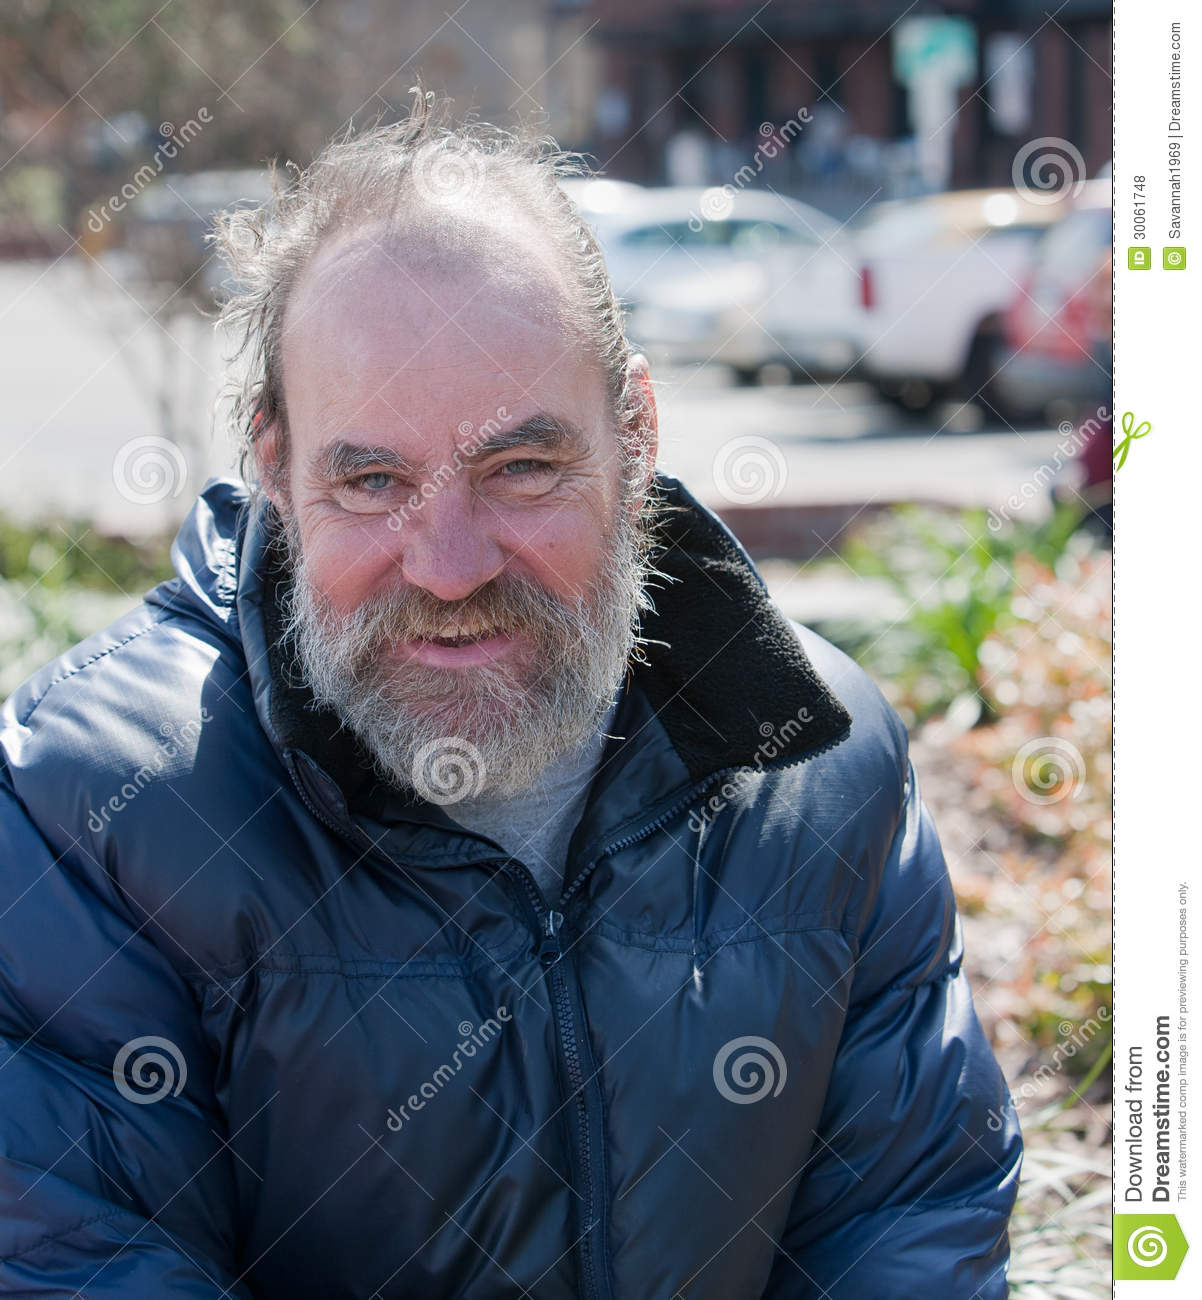 Portrait of happy homeless man outdoors during the day Happy Homeless Man